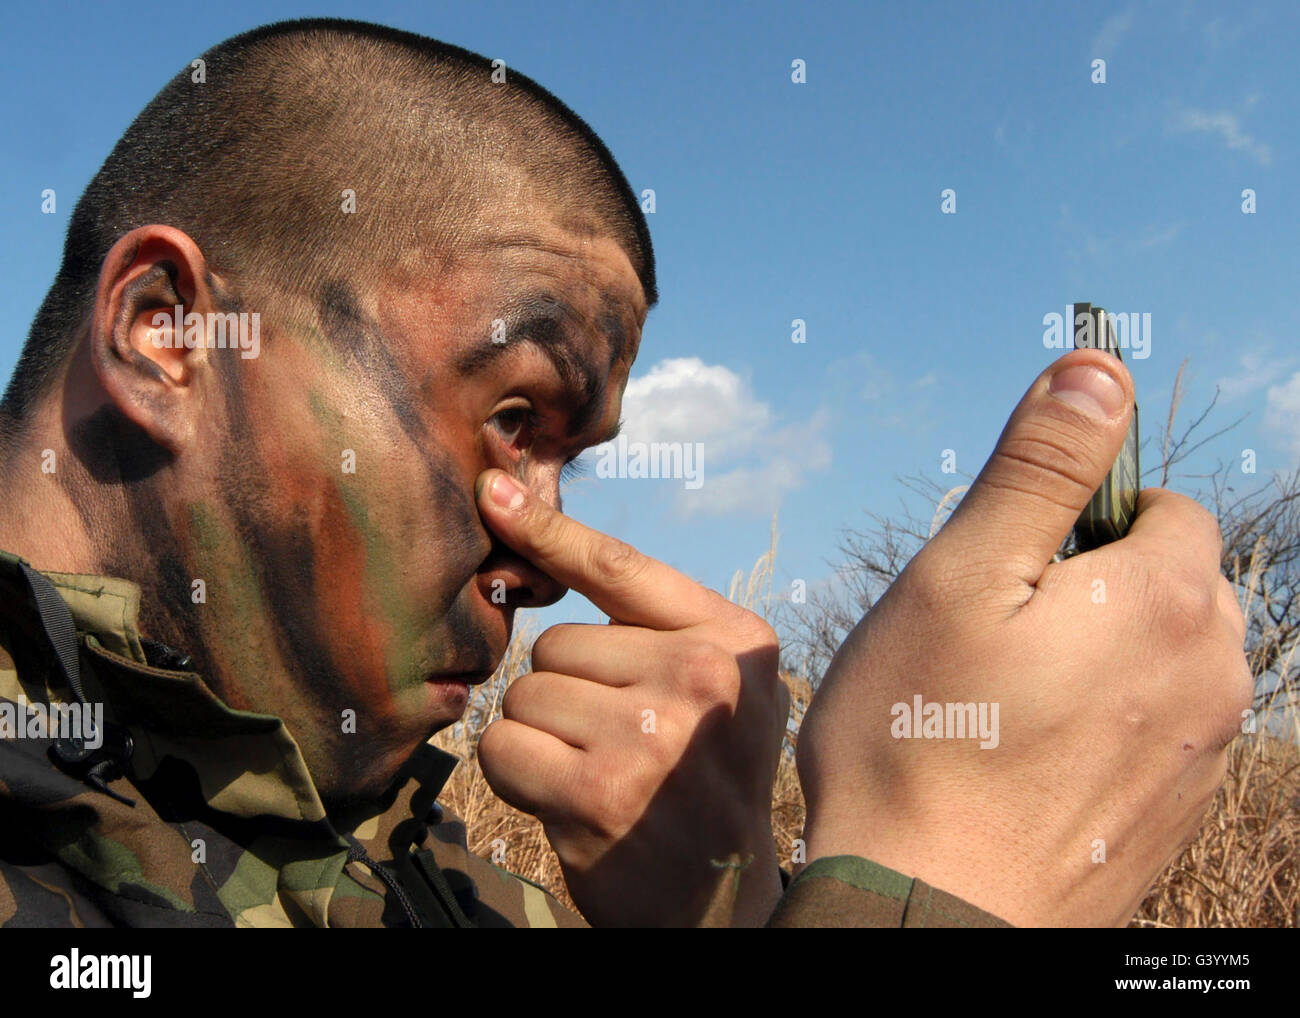 A soldier applying face paint prior to the start of Quarterly Air Base Defense Training, Misawa Air Base, Japan. - Stock Image